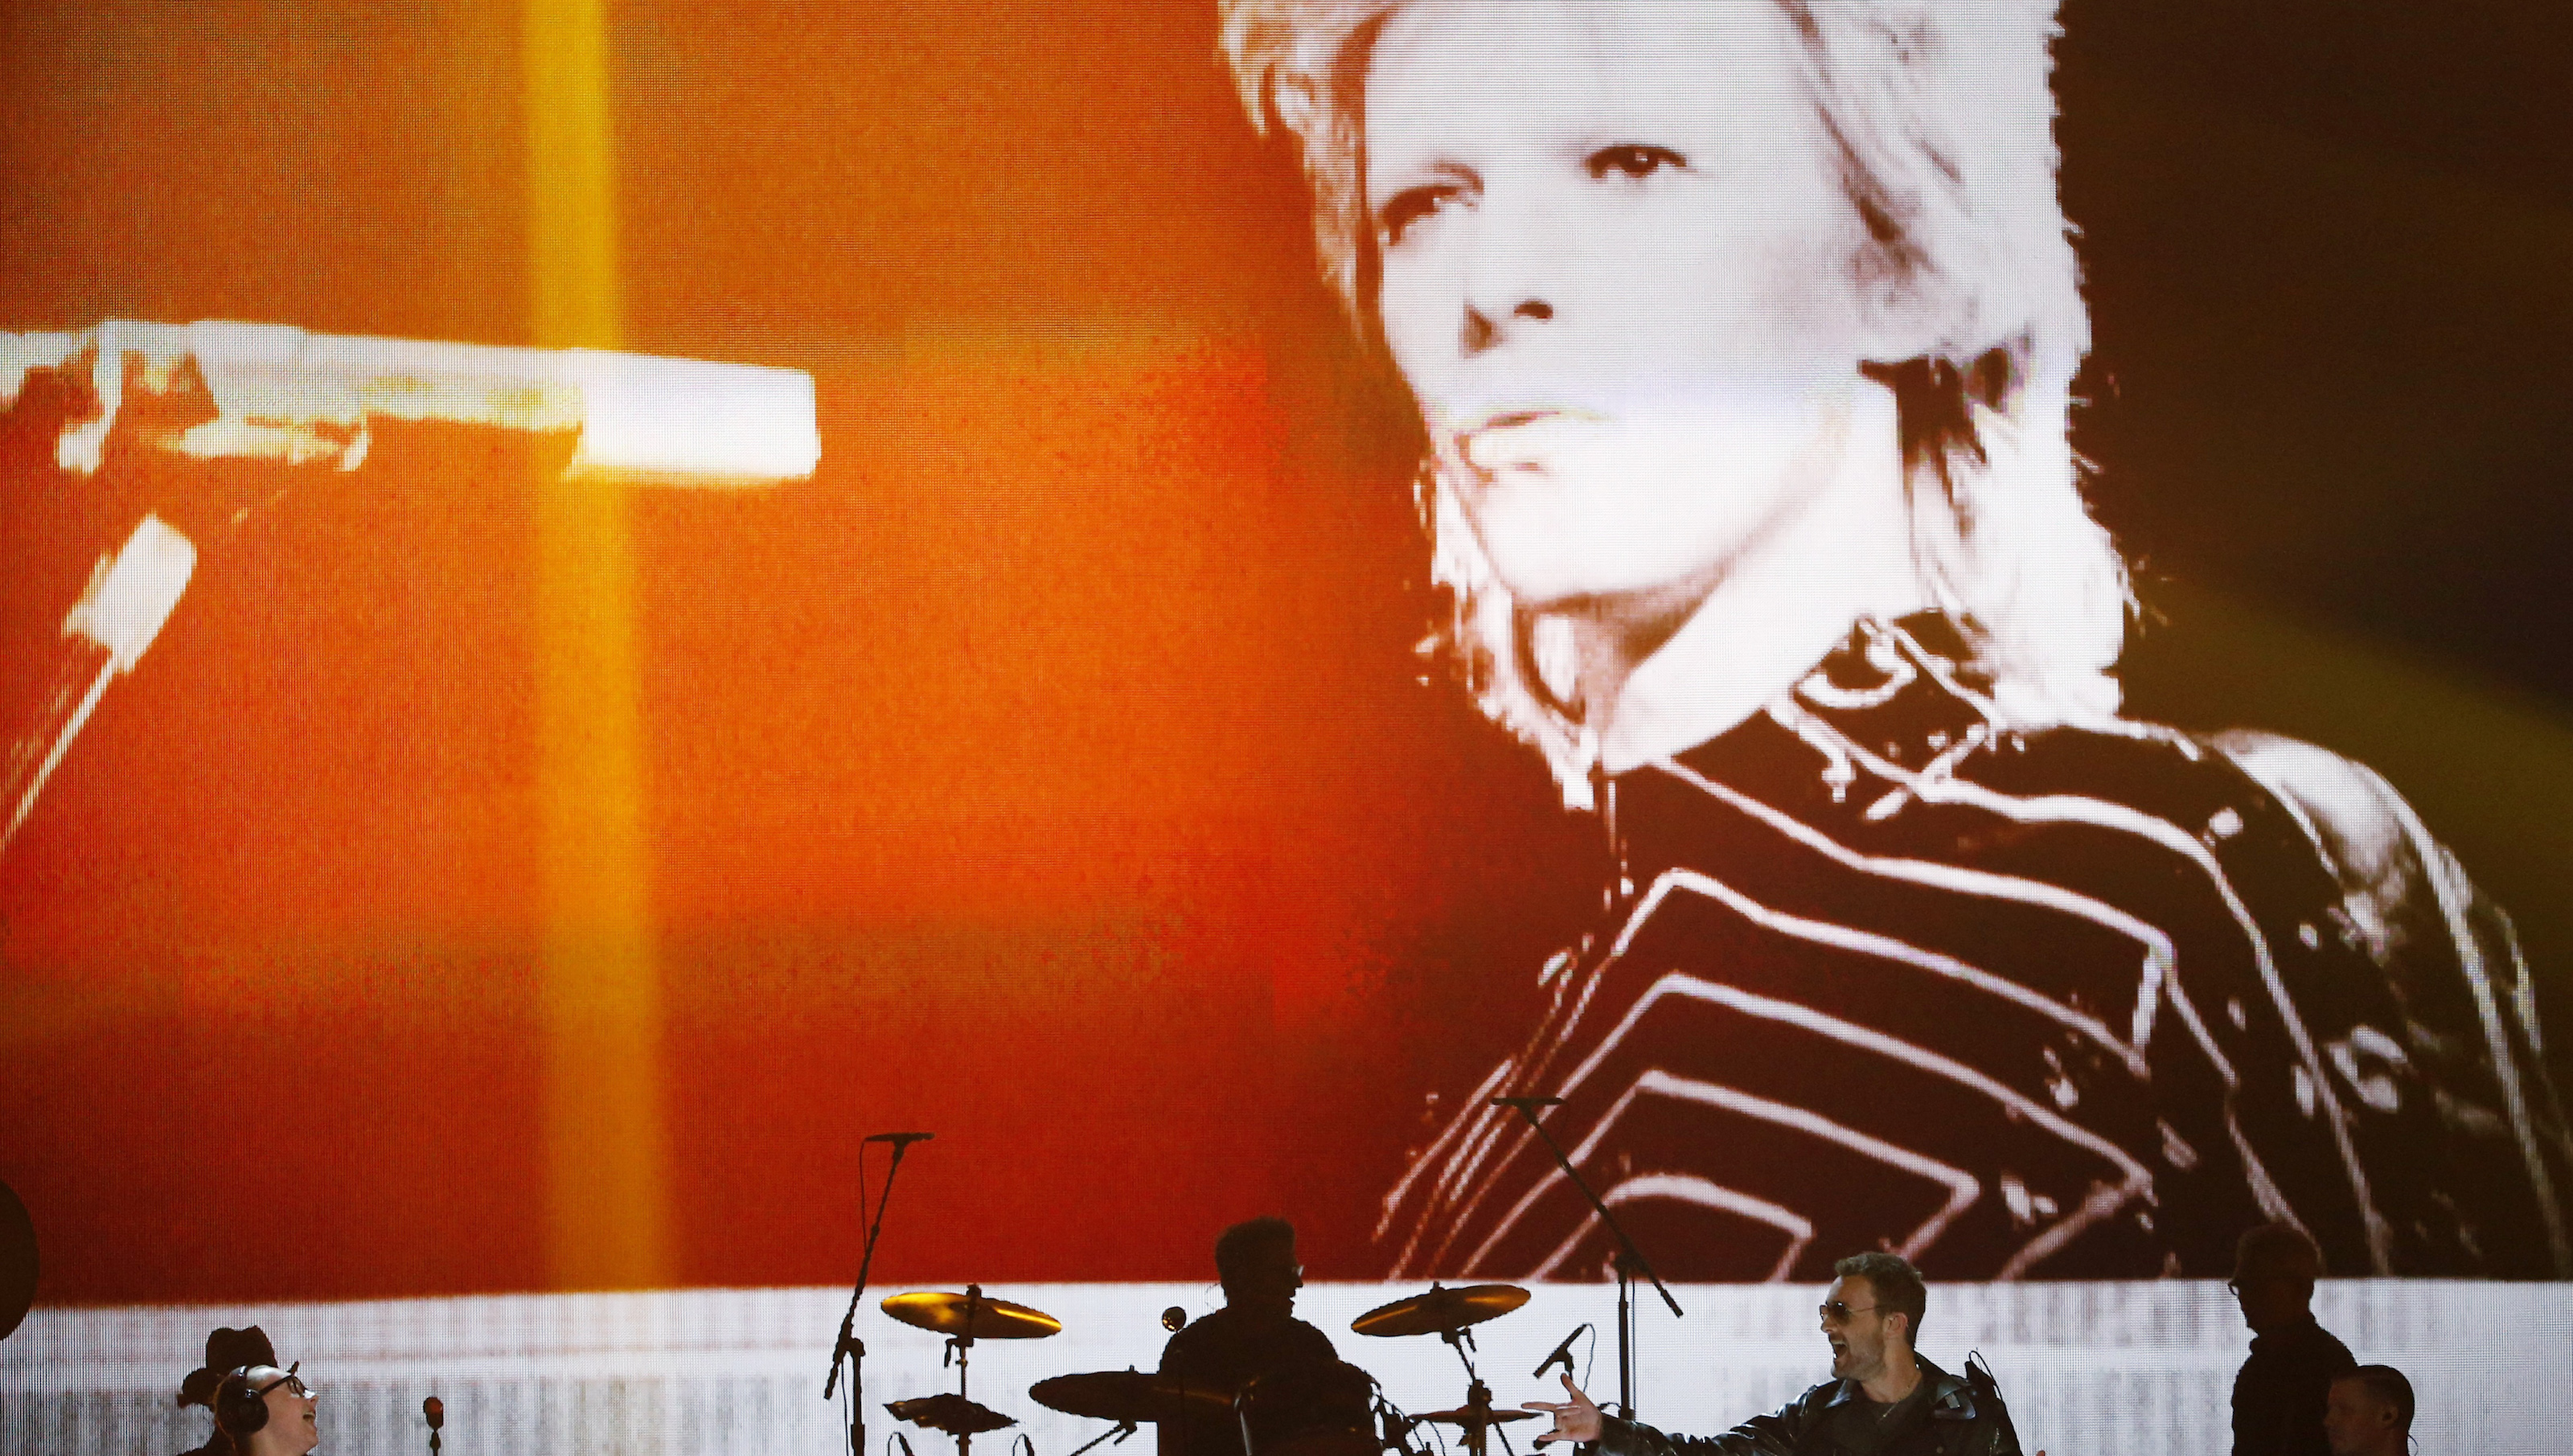 """Image of David Bowie is projected onstage as Eric Church performs """"Record Year"""" during the 51st Academy of Country Music Awards in Las Vegas, Nevada April 3, 2016.  REUTERS/Mario Anzuoni - RTSDF06"""